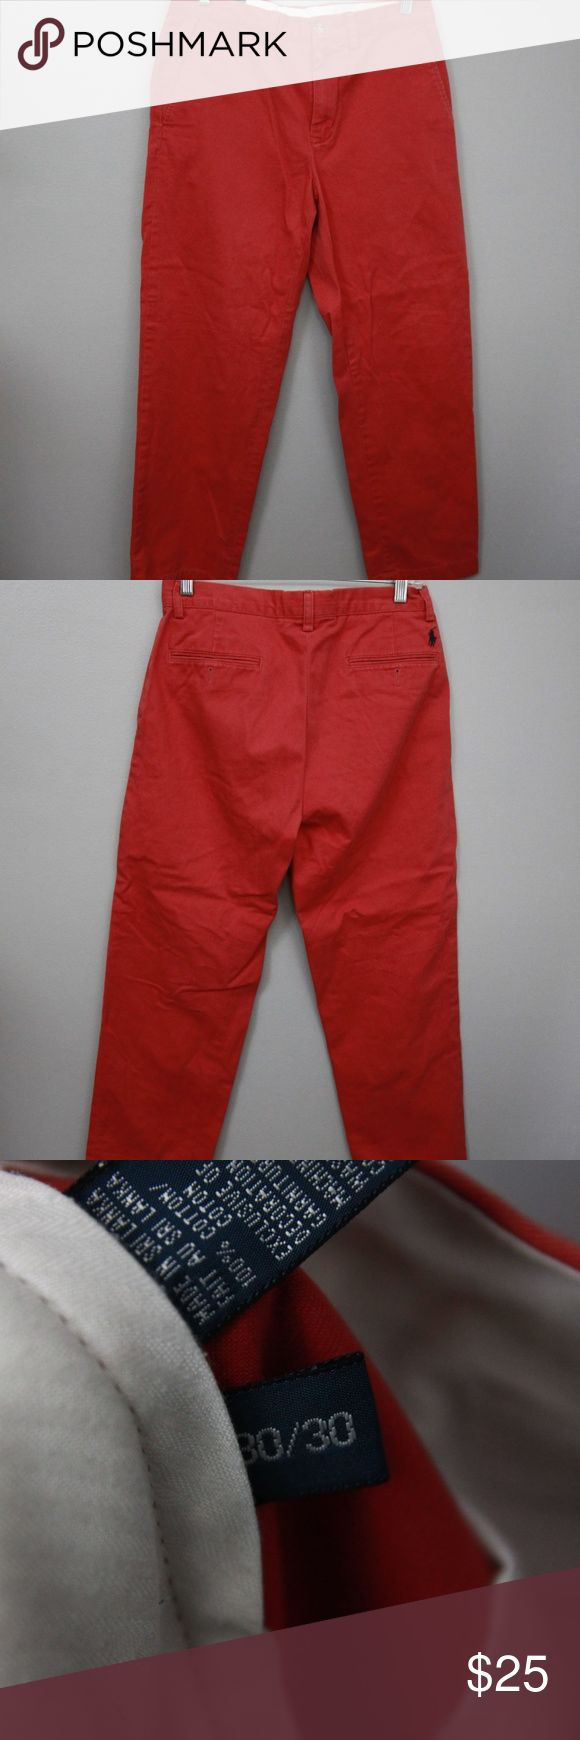 Polo Red Pants Mens Sz 30x30 Preston Ralph Lauren men's casual pants in size 30x30. 100% cotton, machine wash. Preston fit. Color is more red/pink.   Measurements Waist 32 inches Inseam 30 inches  inventory 59-117 Polo by Ralph Lauren Pants